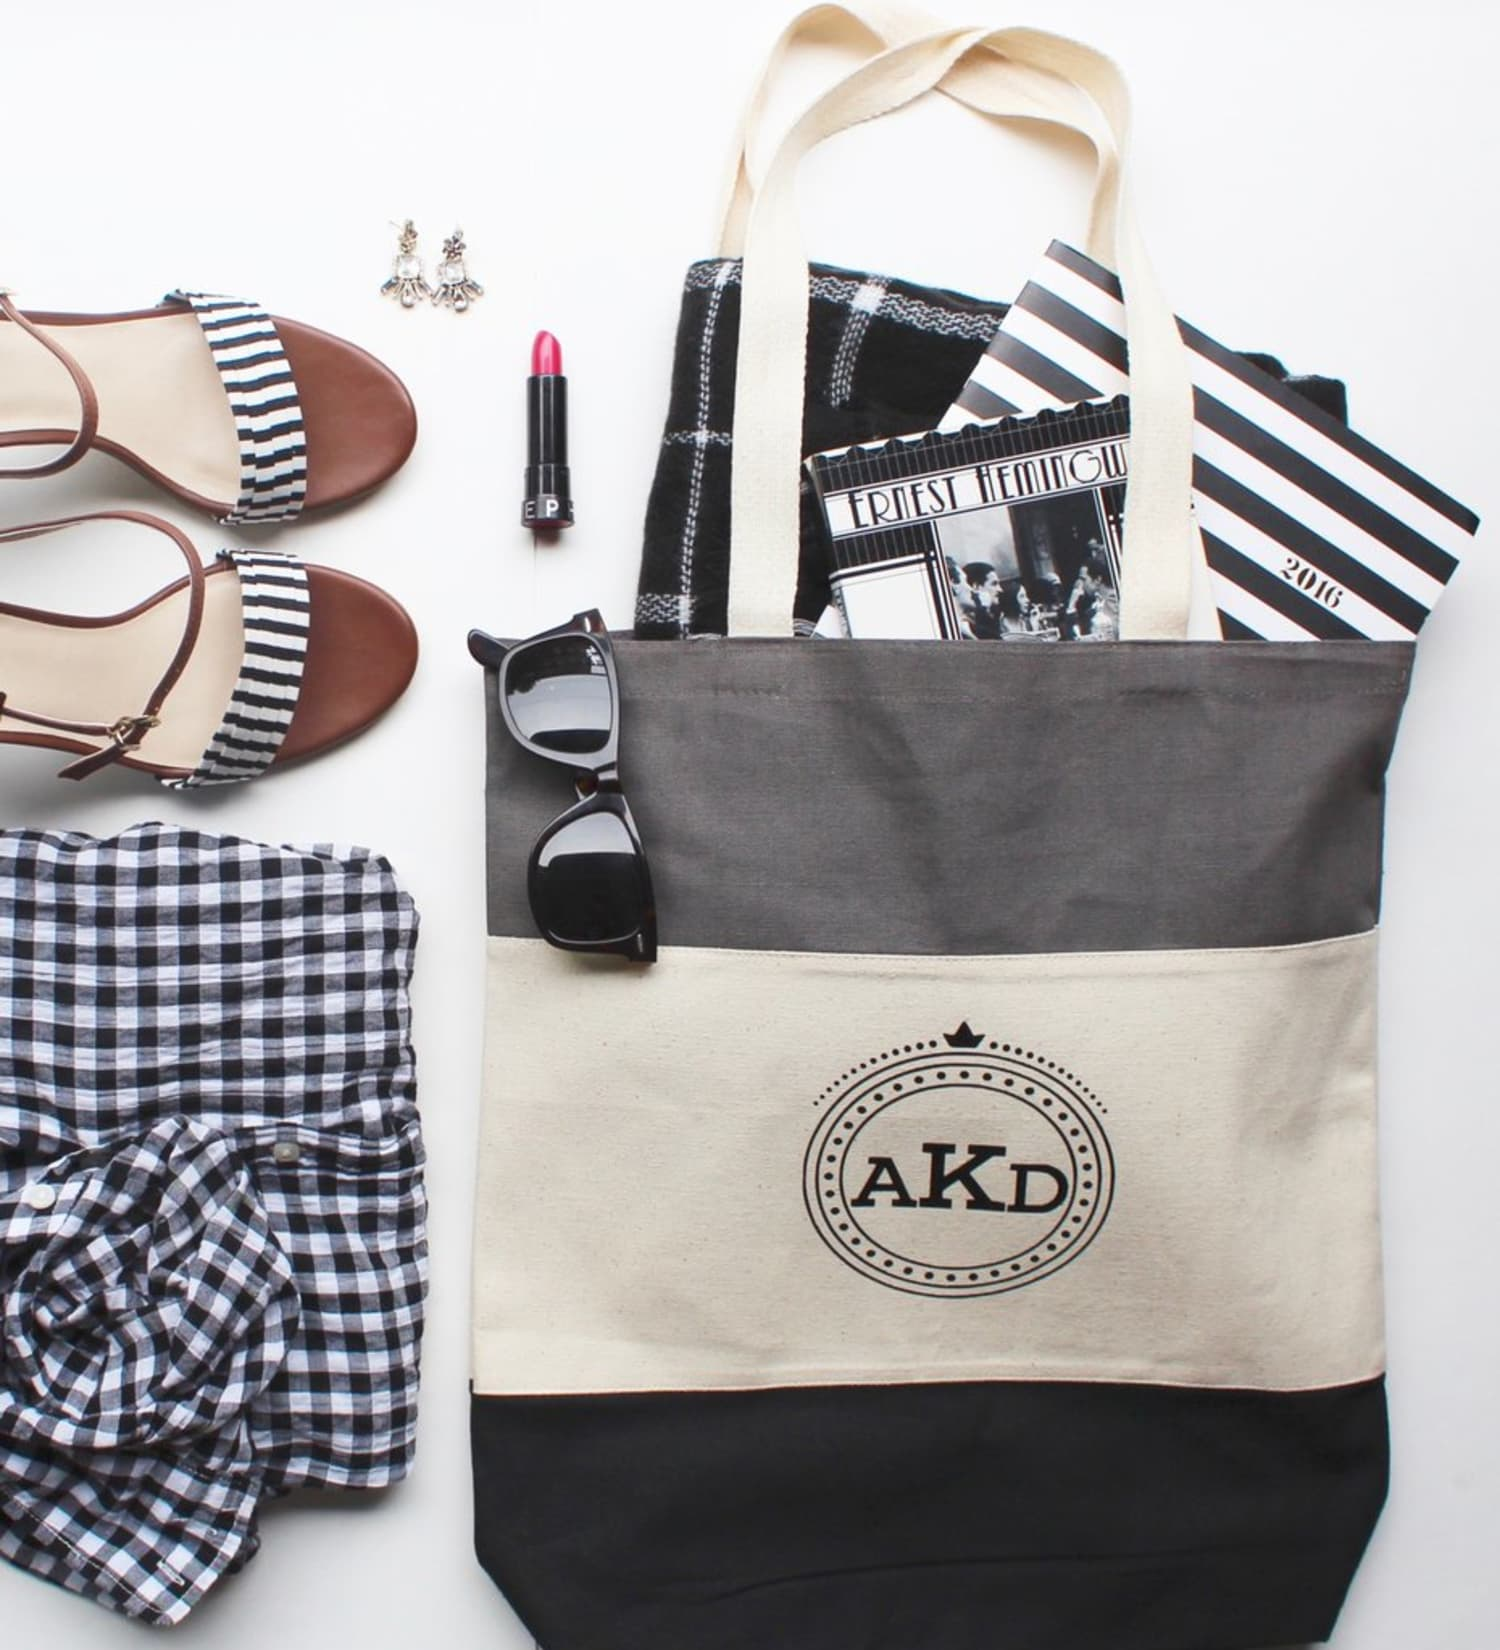 Fashion Hacks: 9 Simple Ways to Customize Your Clothing